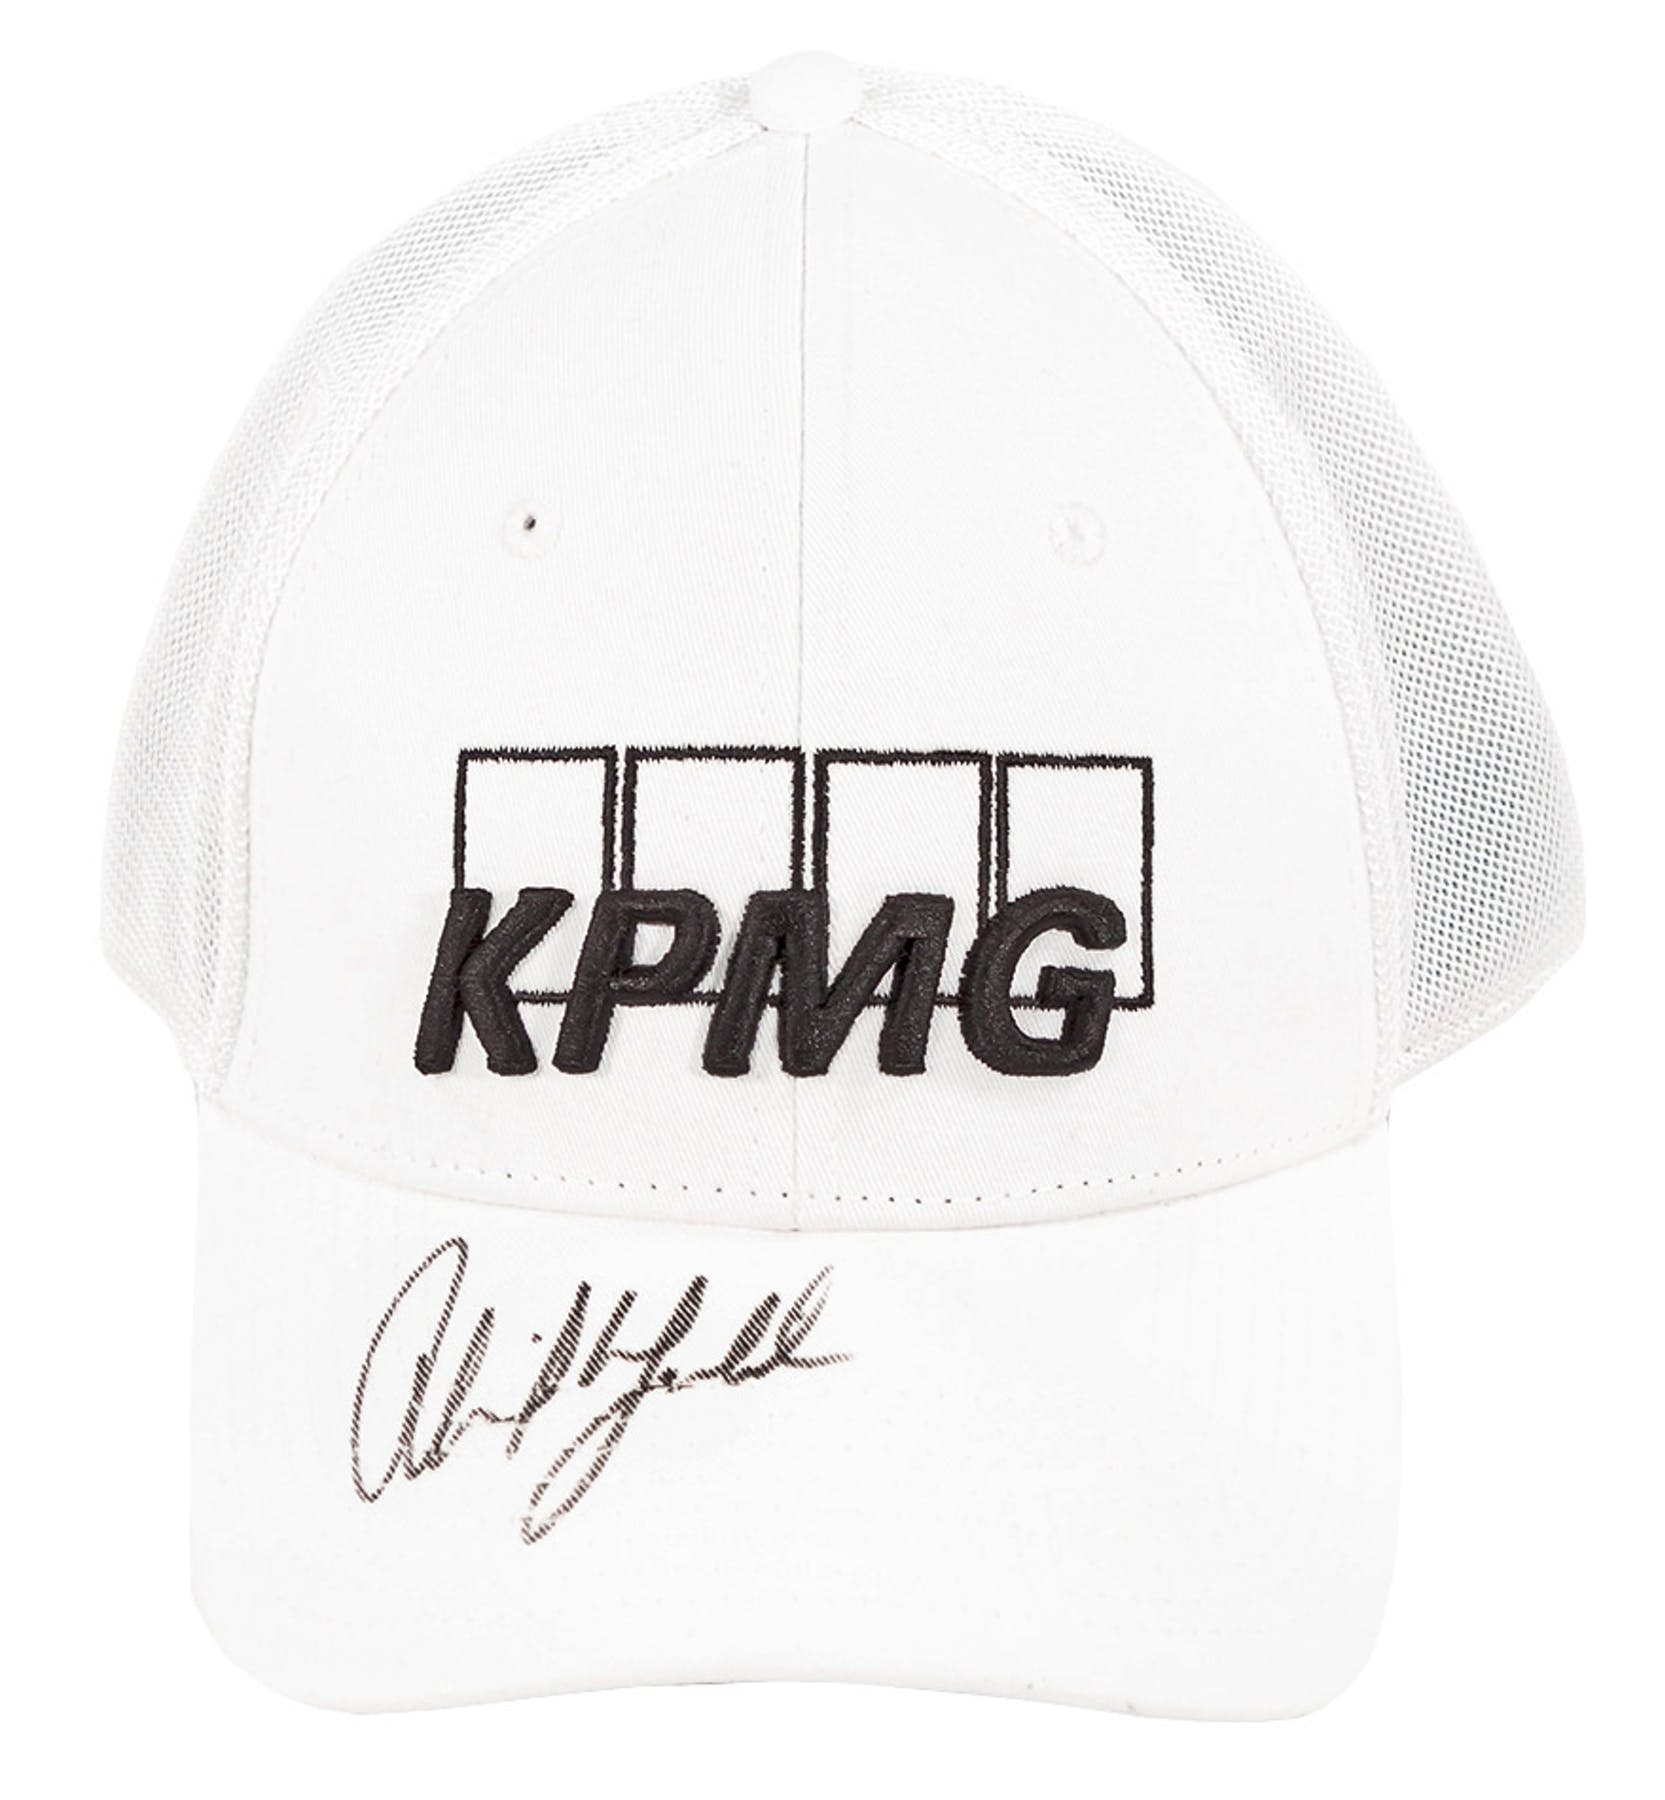 ef94f4bbde9 Phil Mickelson Autographed Official White Callaway KPMG Hat (JSA ...